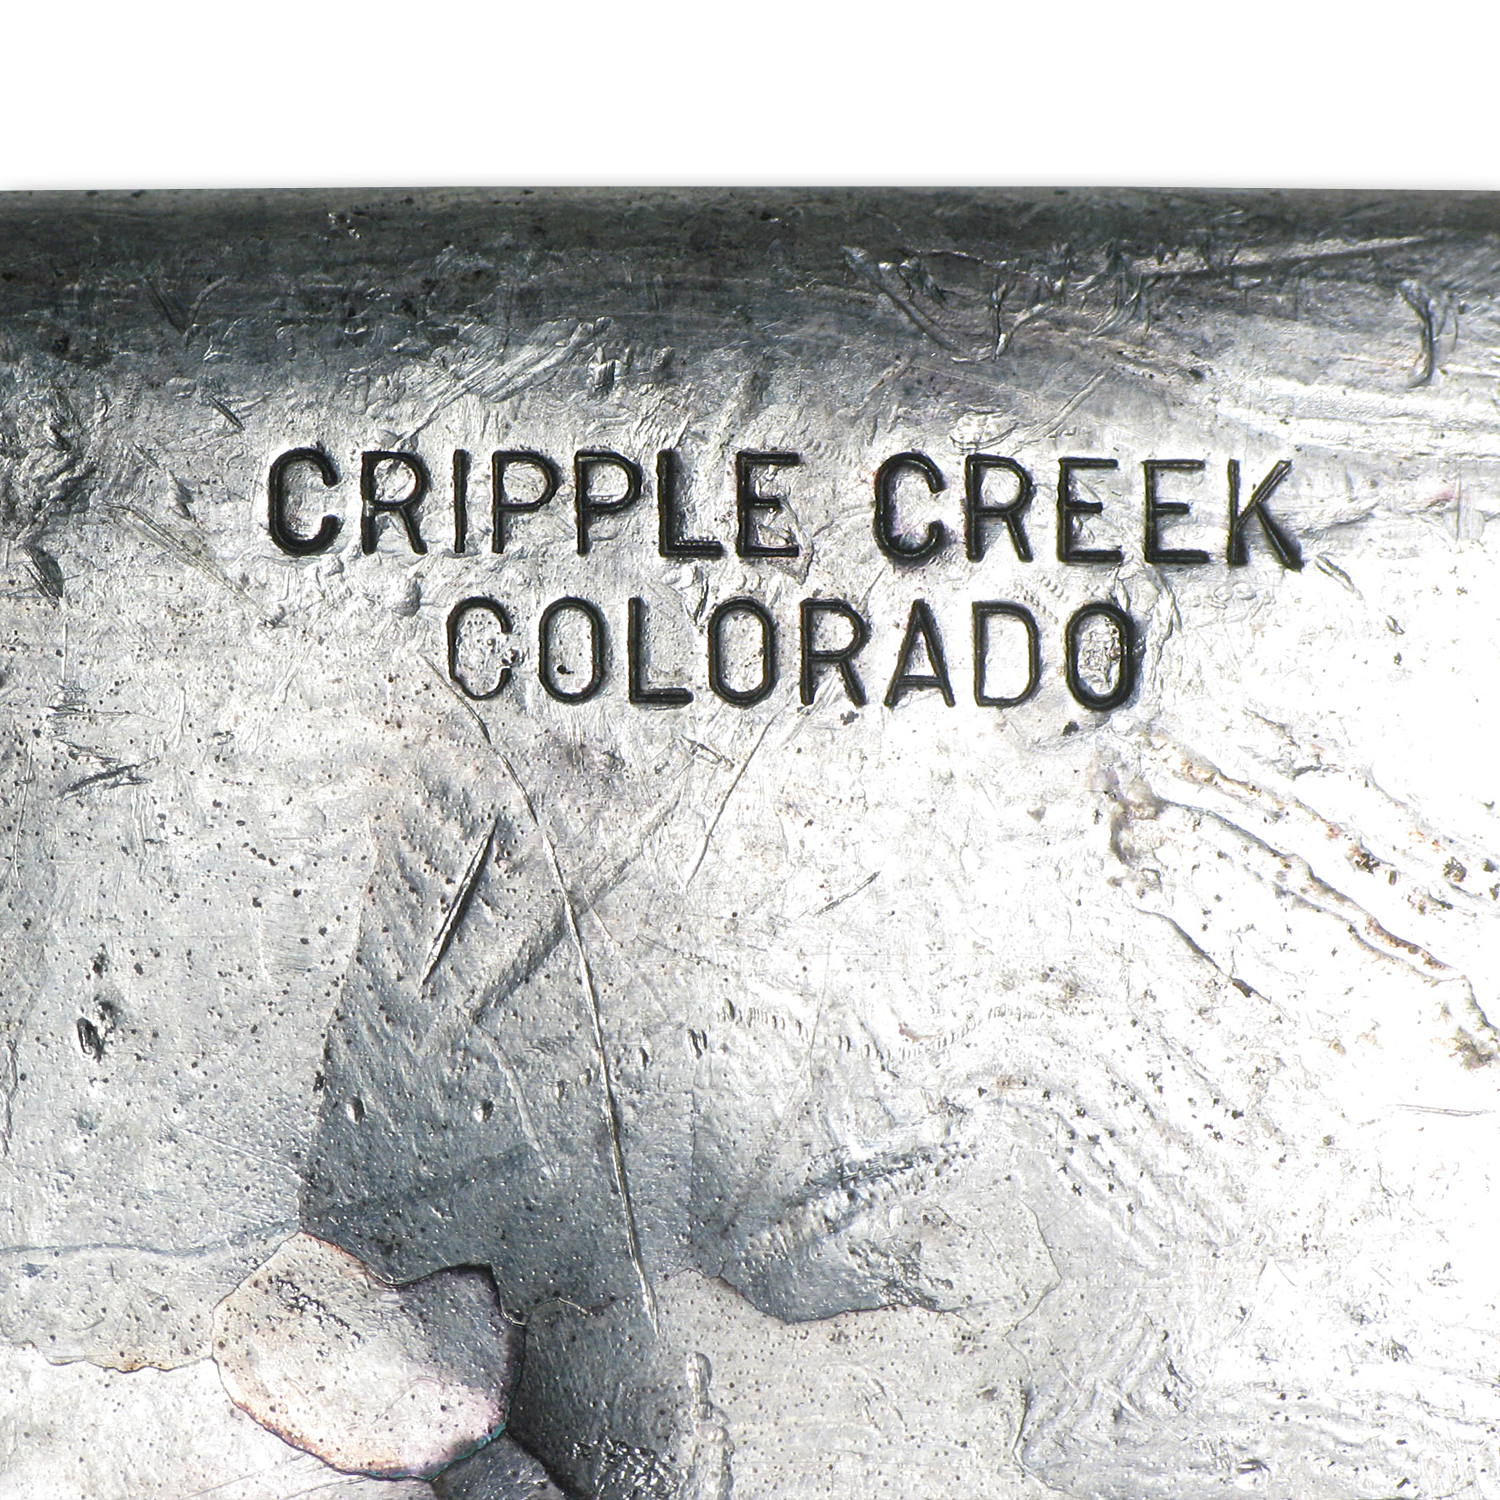 10 oz Silver Bar - Cripple Creek Colorado